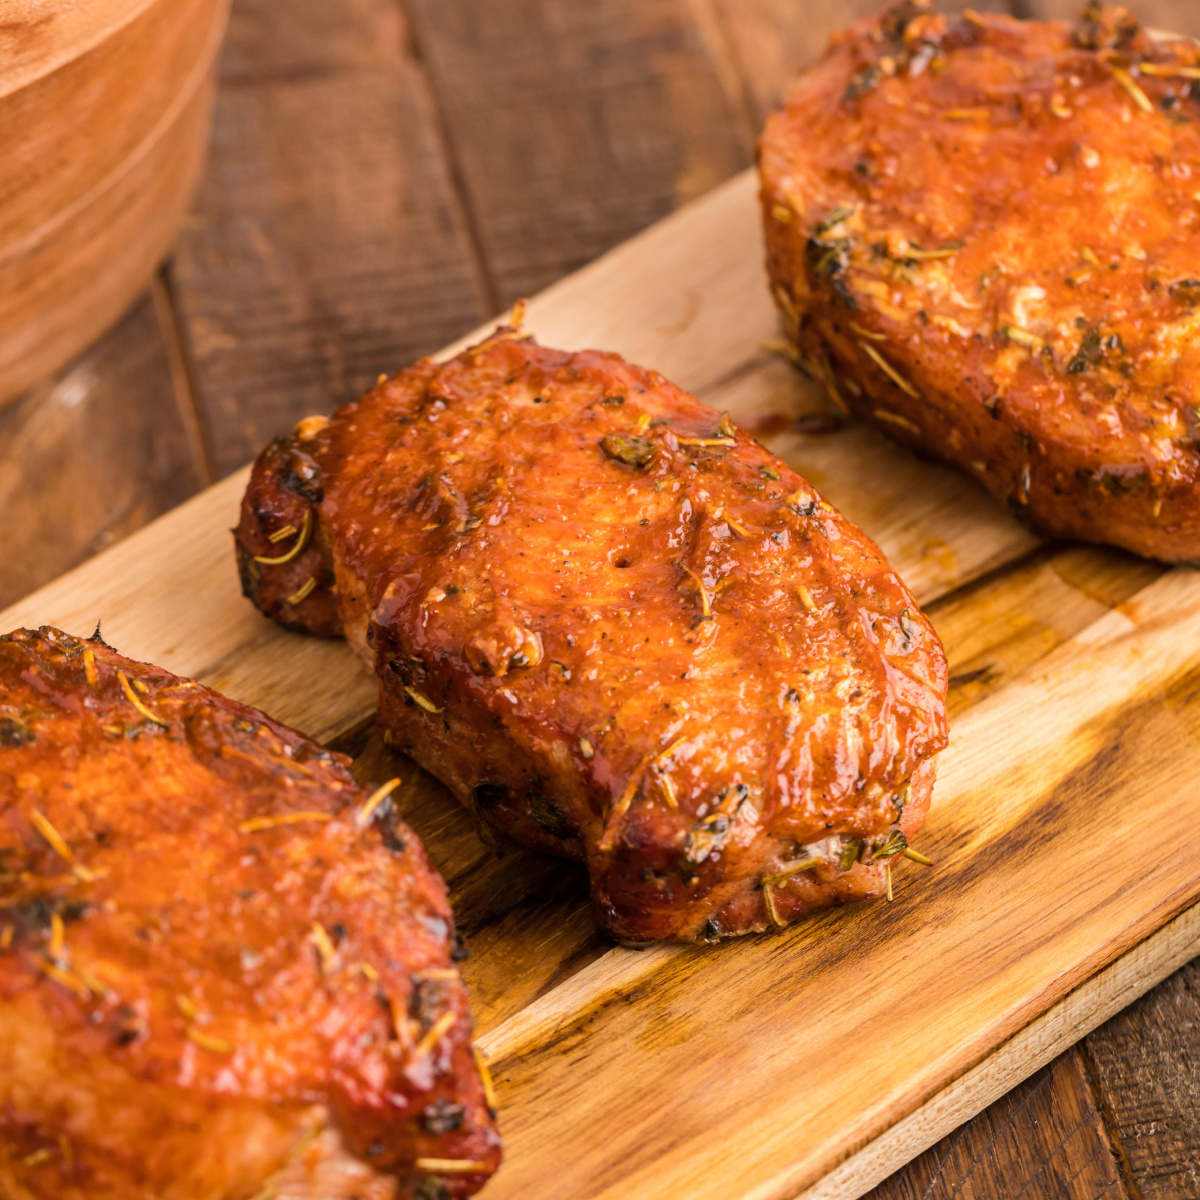 Smoked pork chops on a wooden board covered in BBQ sauce.